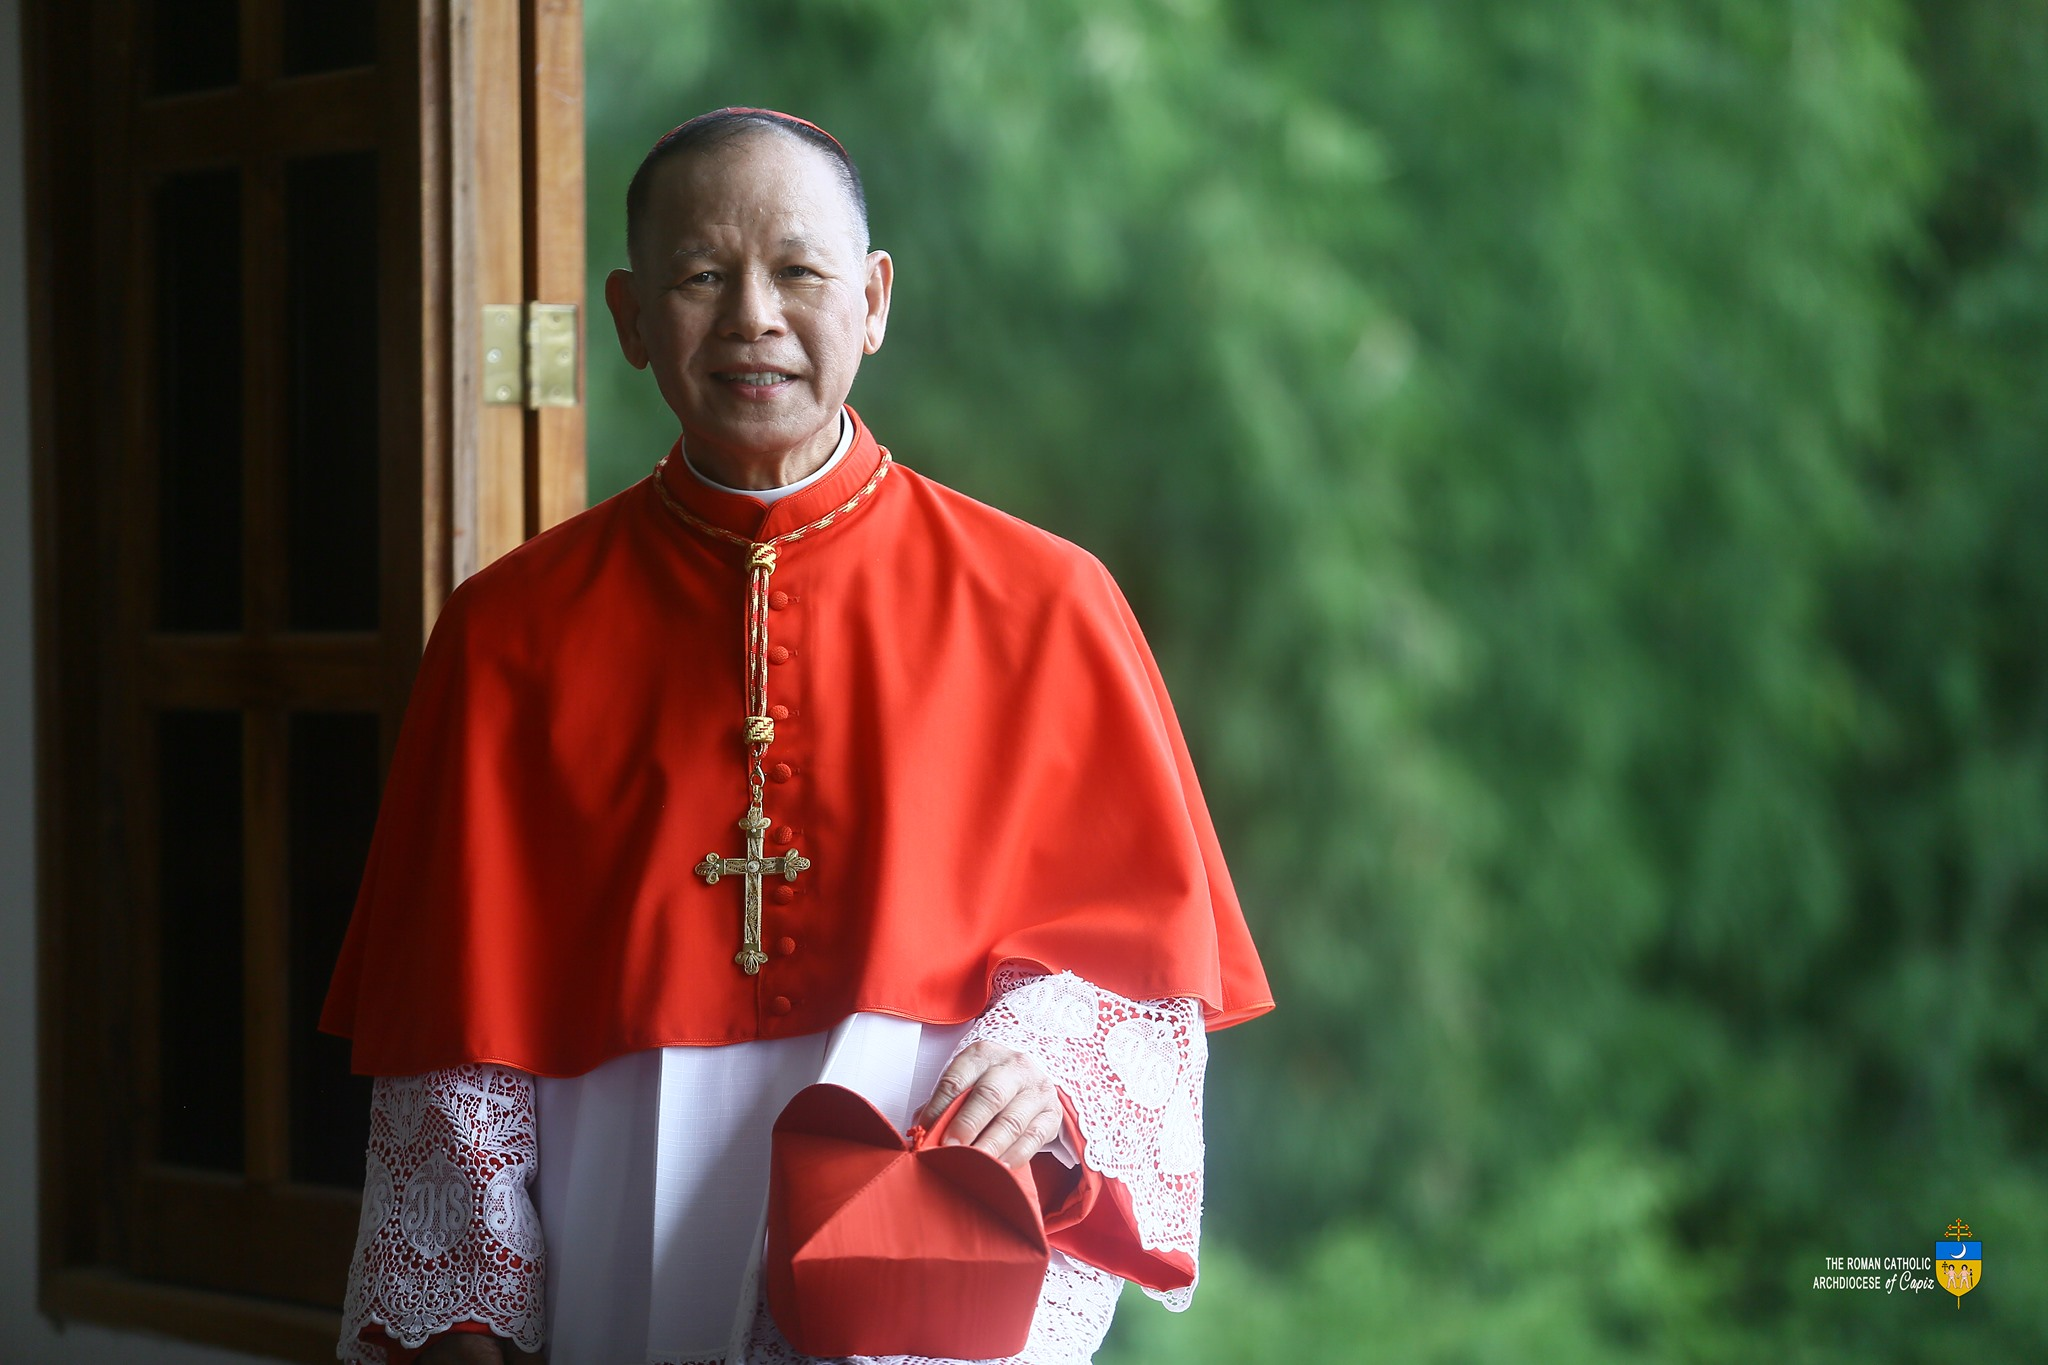 Archdiocese of Manila all set for new Archbishop's Installation